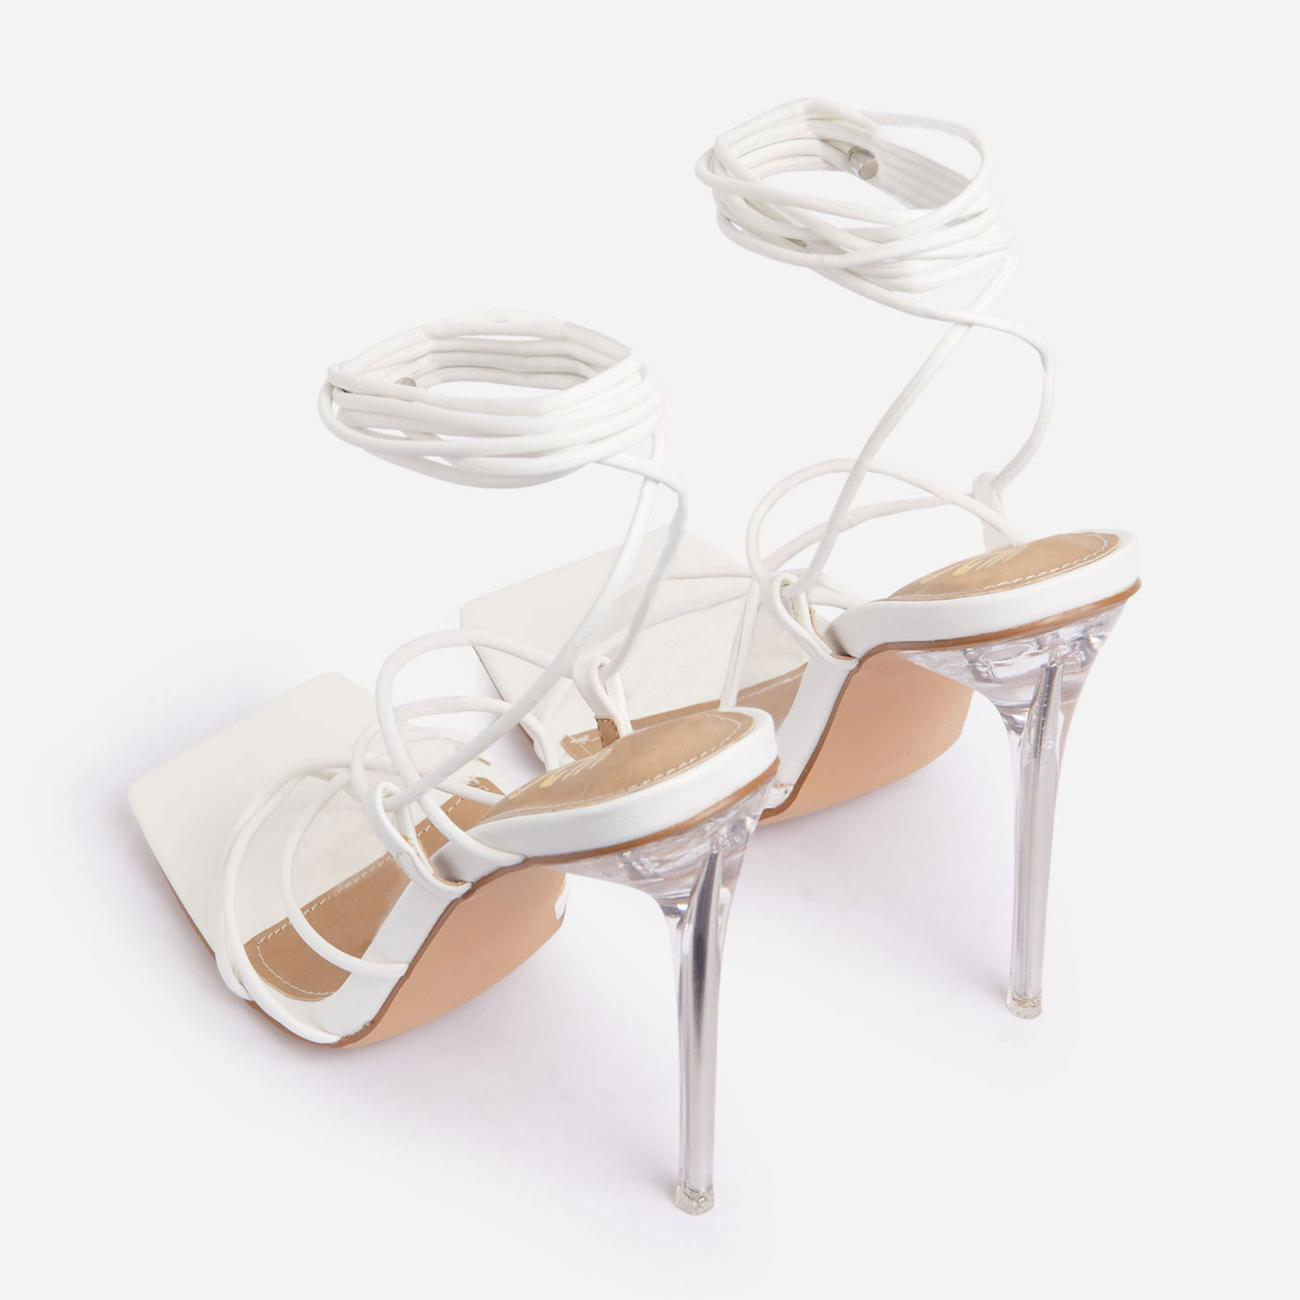 Sunbathe Square Toe Lace Up Clear Perspex Heel In White Faux Leather Image 3